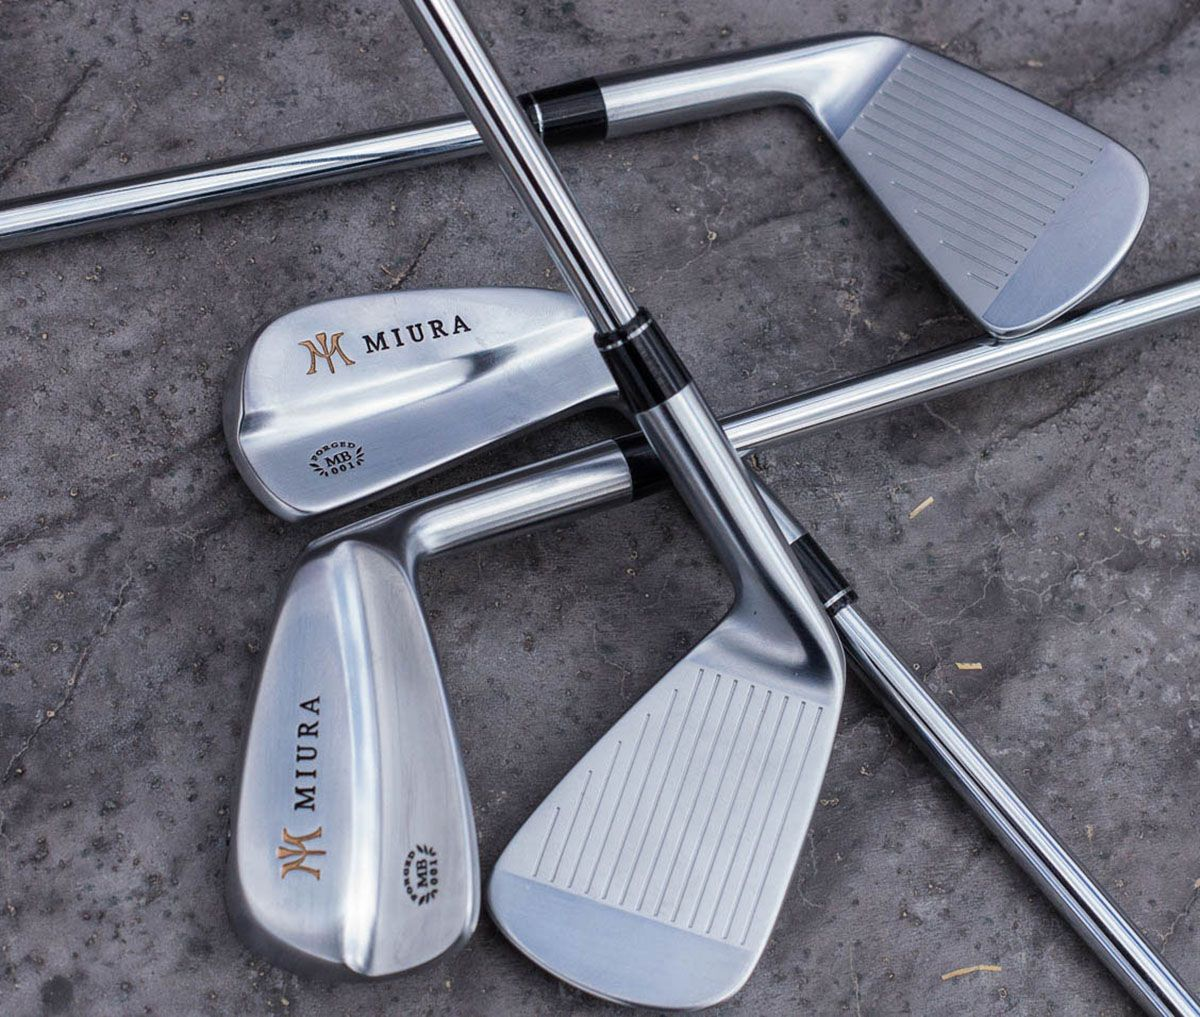 Know Your Japanese Brands: Miura